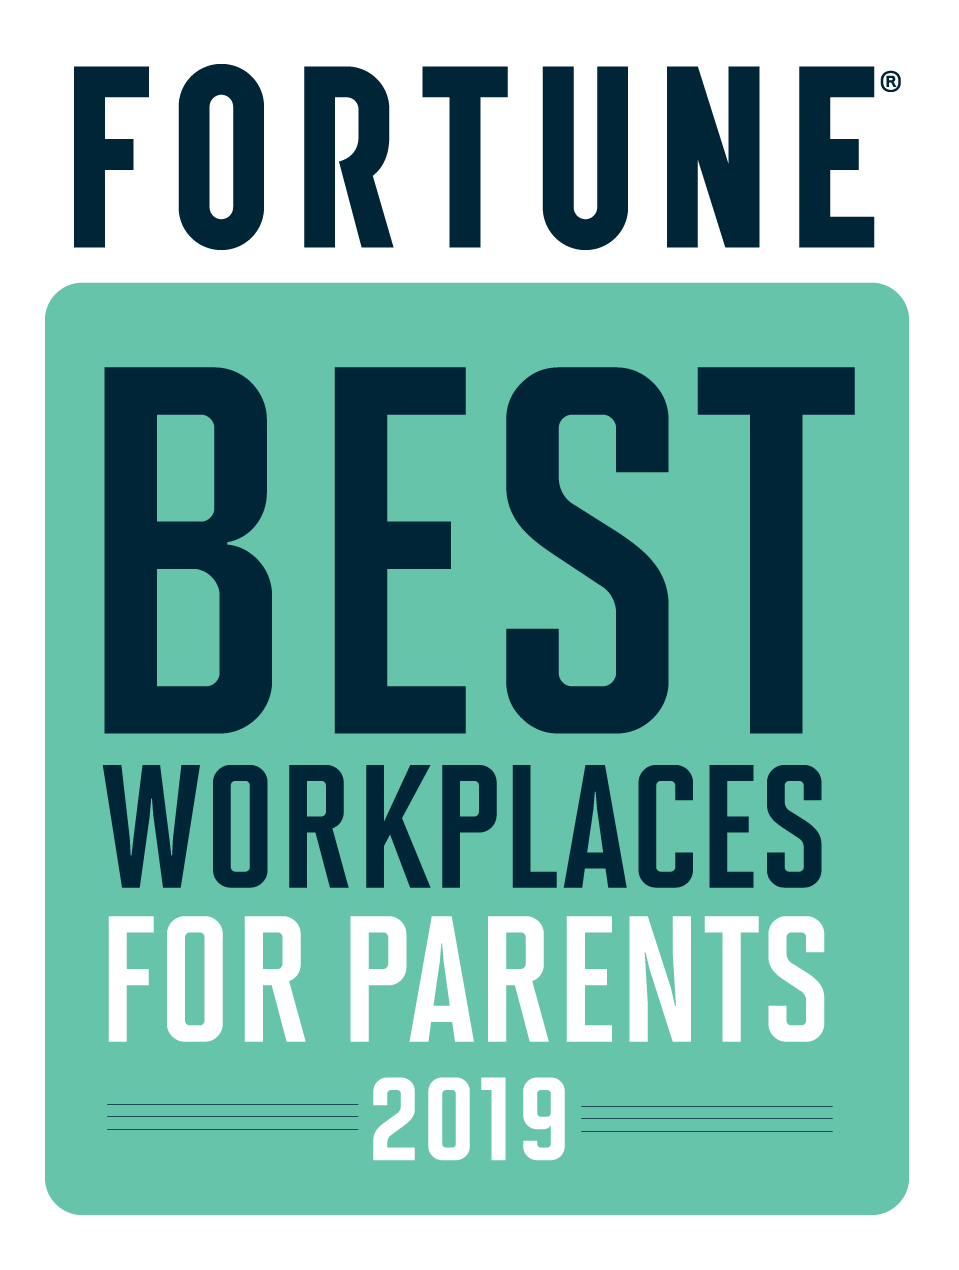 Fortune Best Place to Work for Parents 2019